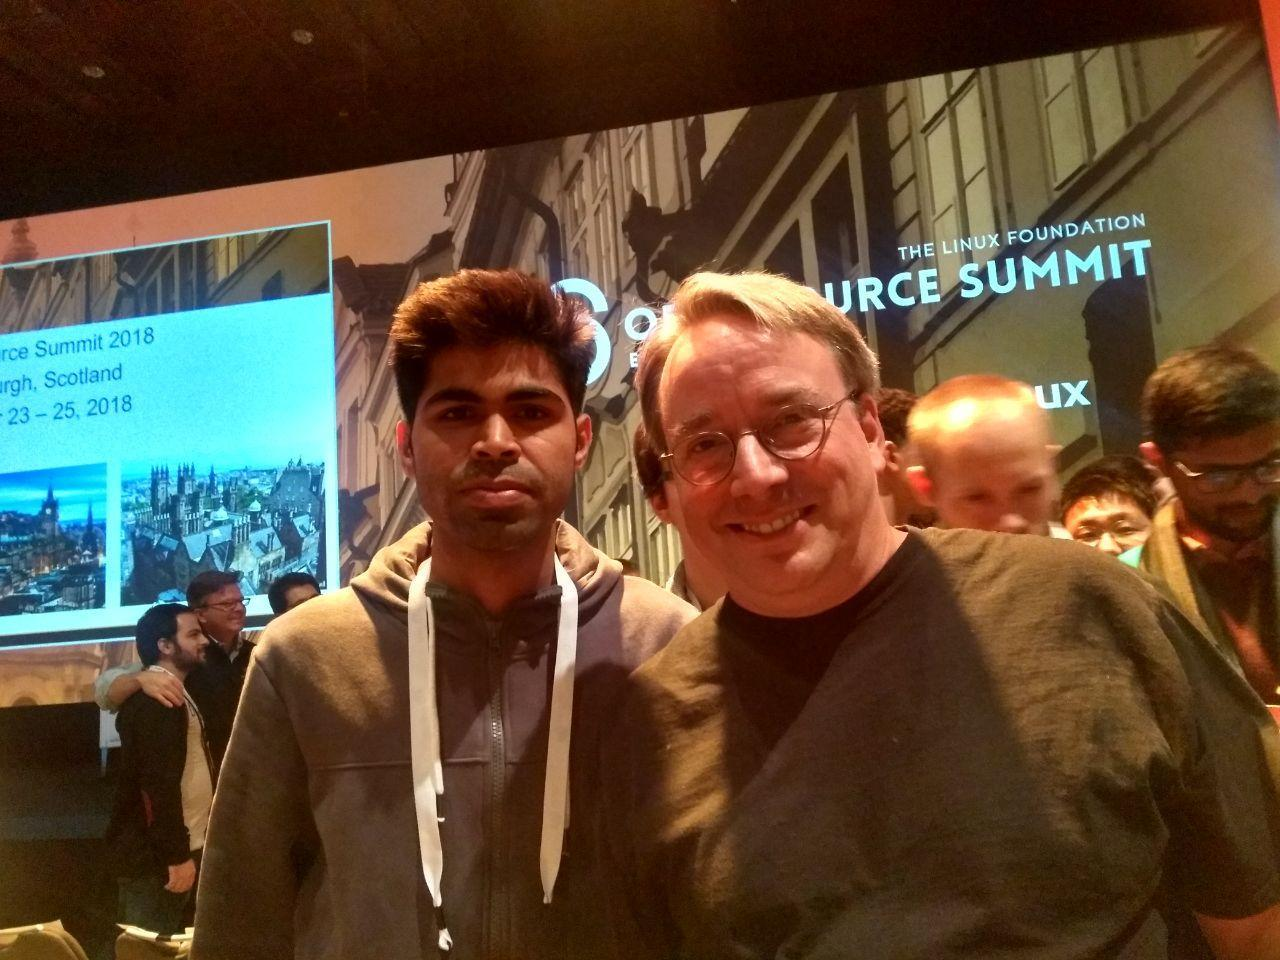 Shyam with Linus